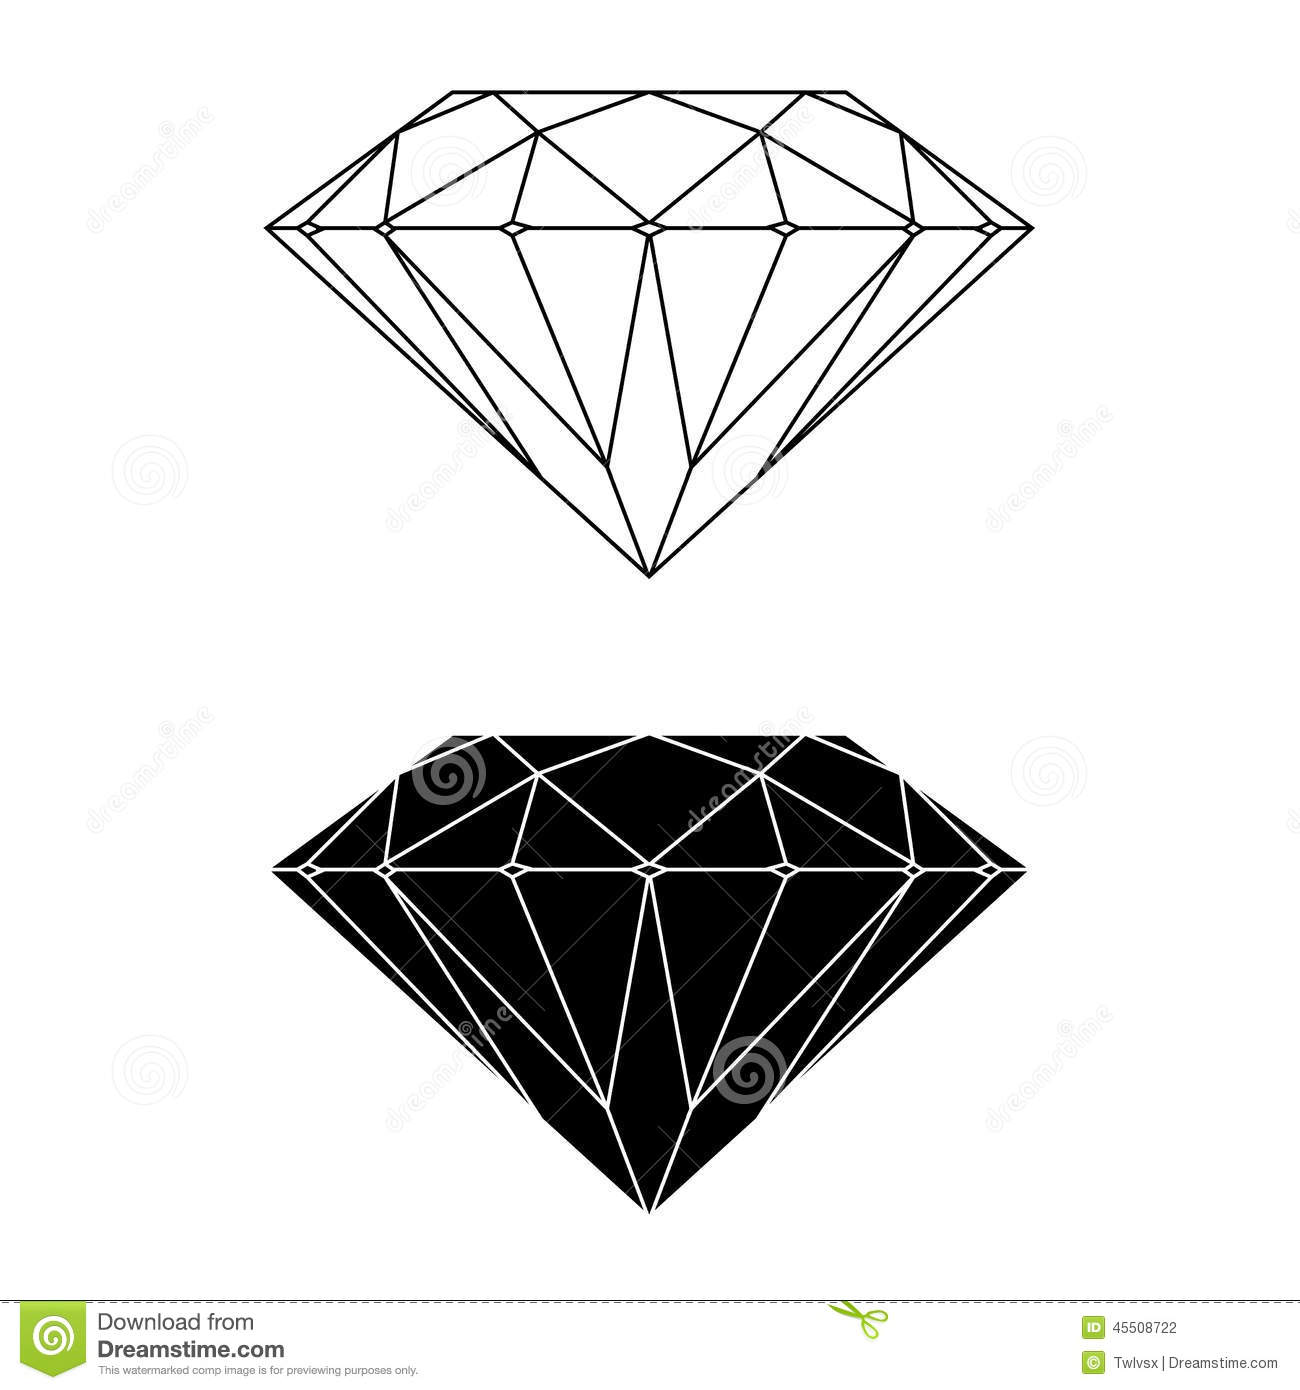 Stock Photography: Diamond Vector and Silhouette. Image ...